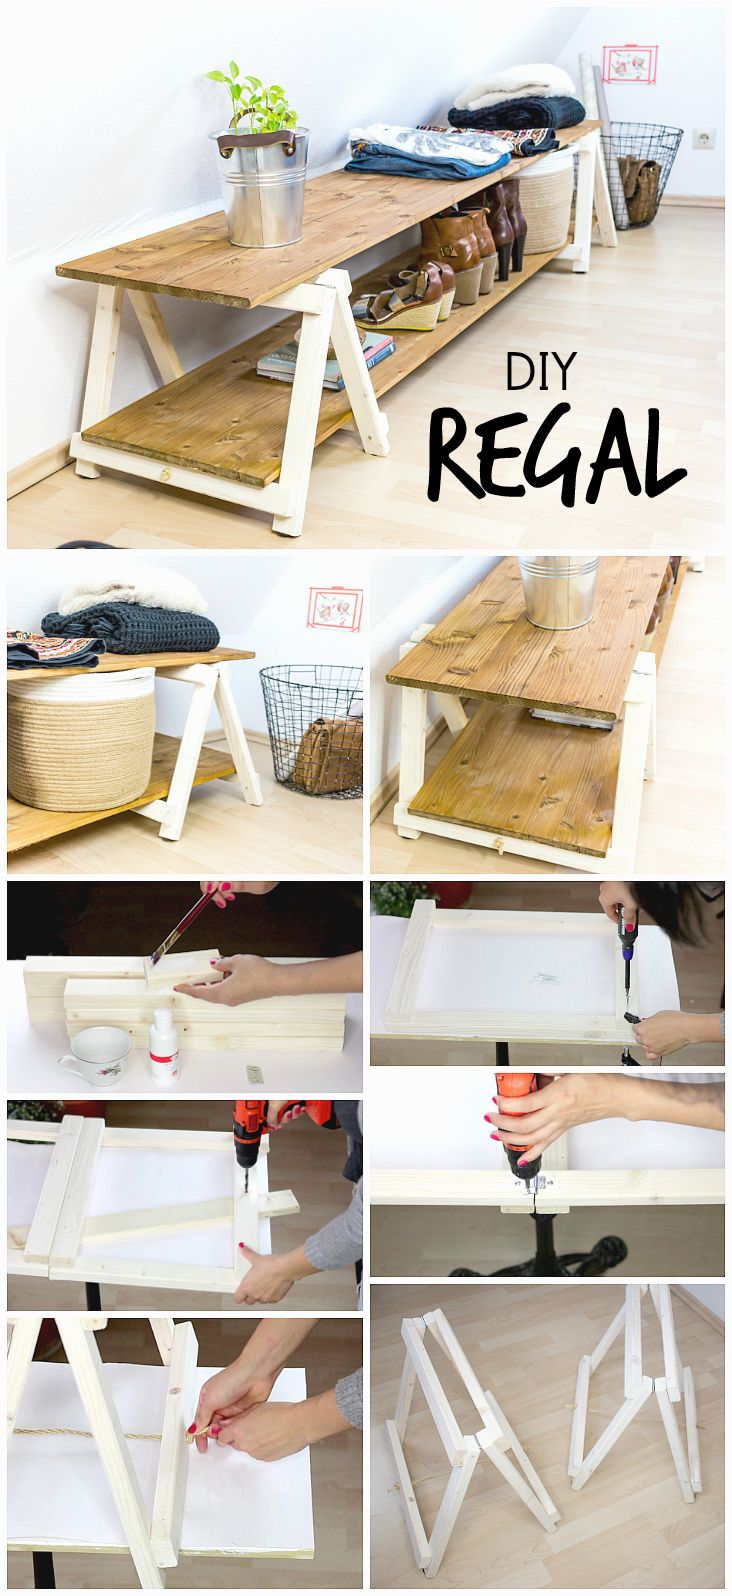 diy regal regal bauen mit mini klappb cken pinterest. Black Bedroom Furniture Sets. Home Design Ideas